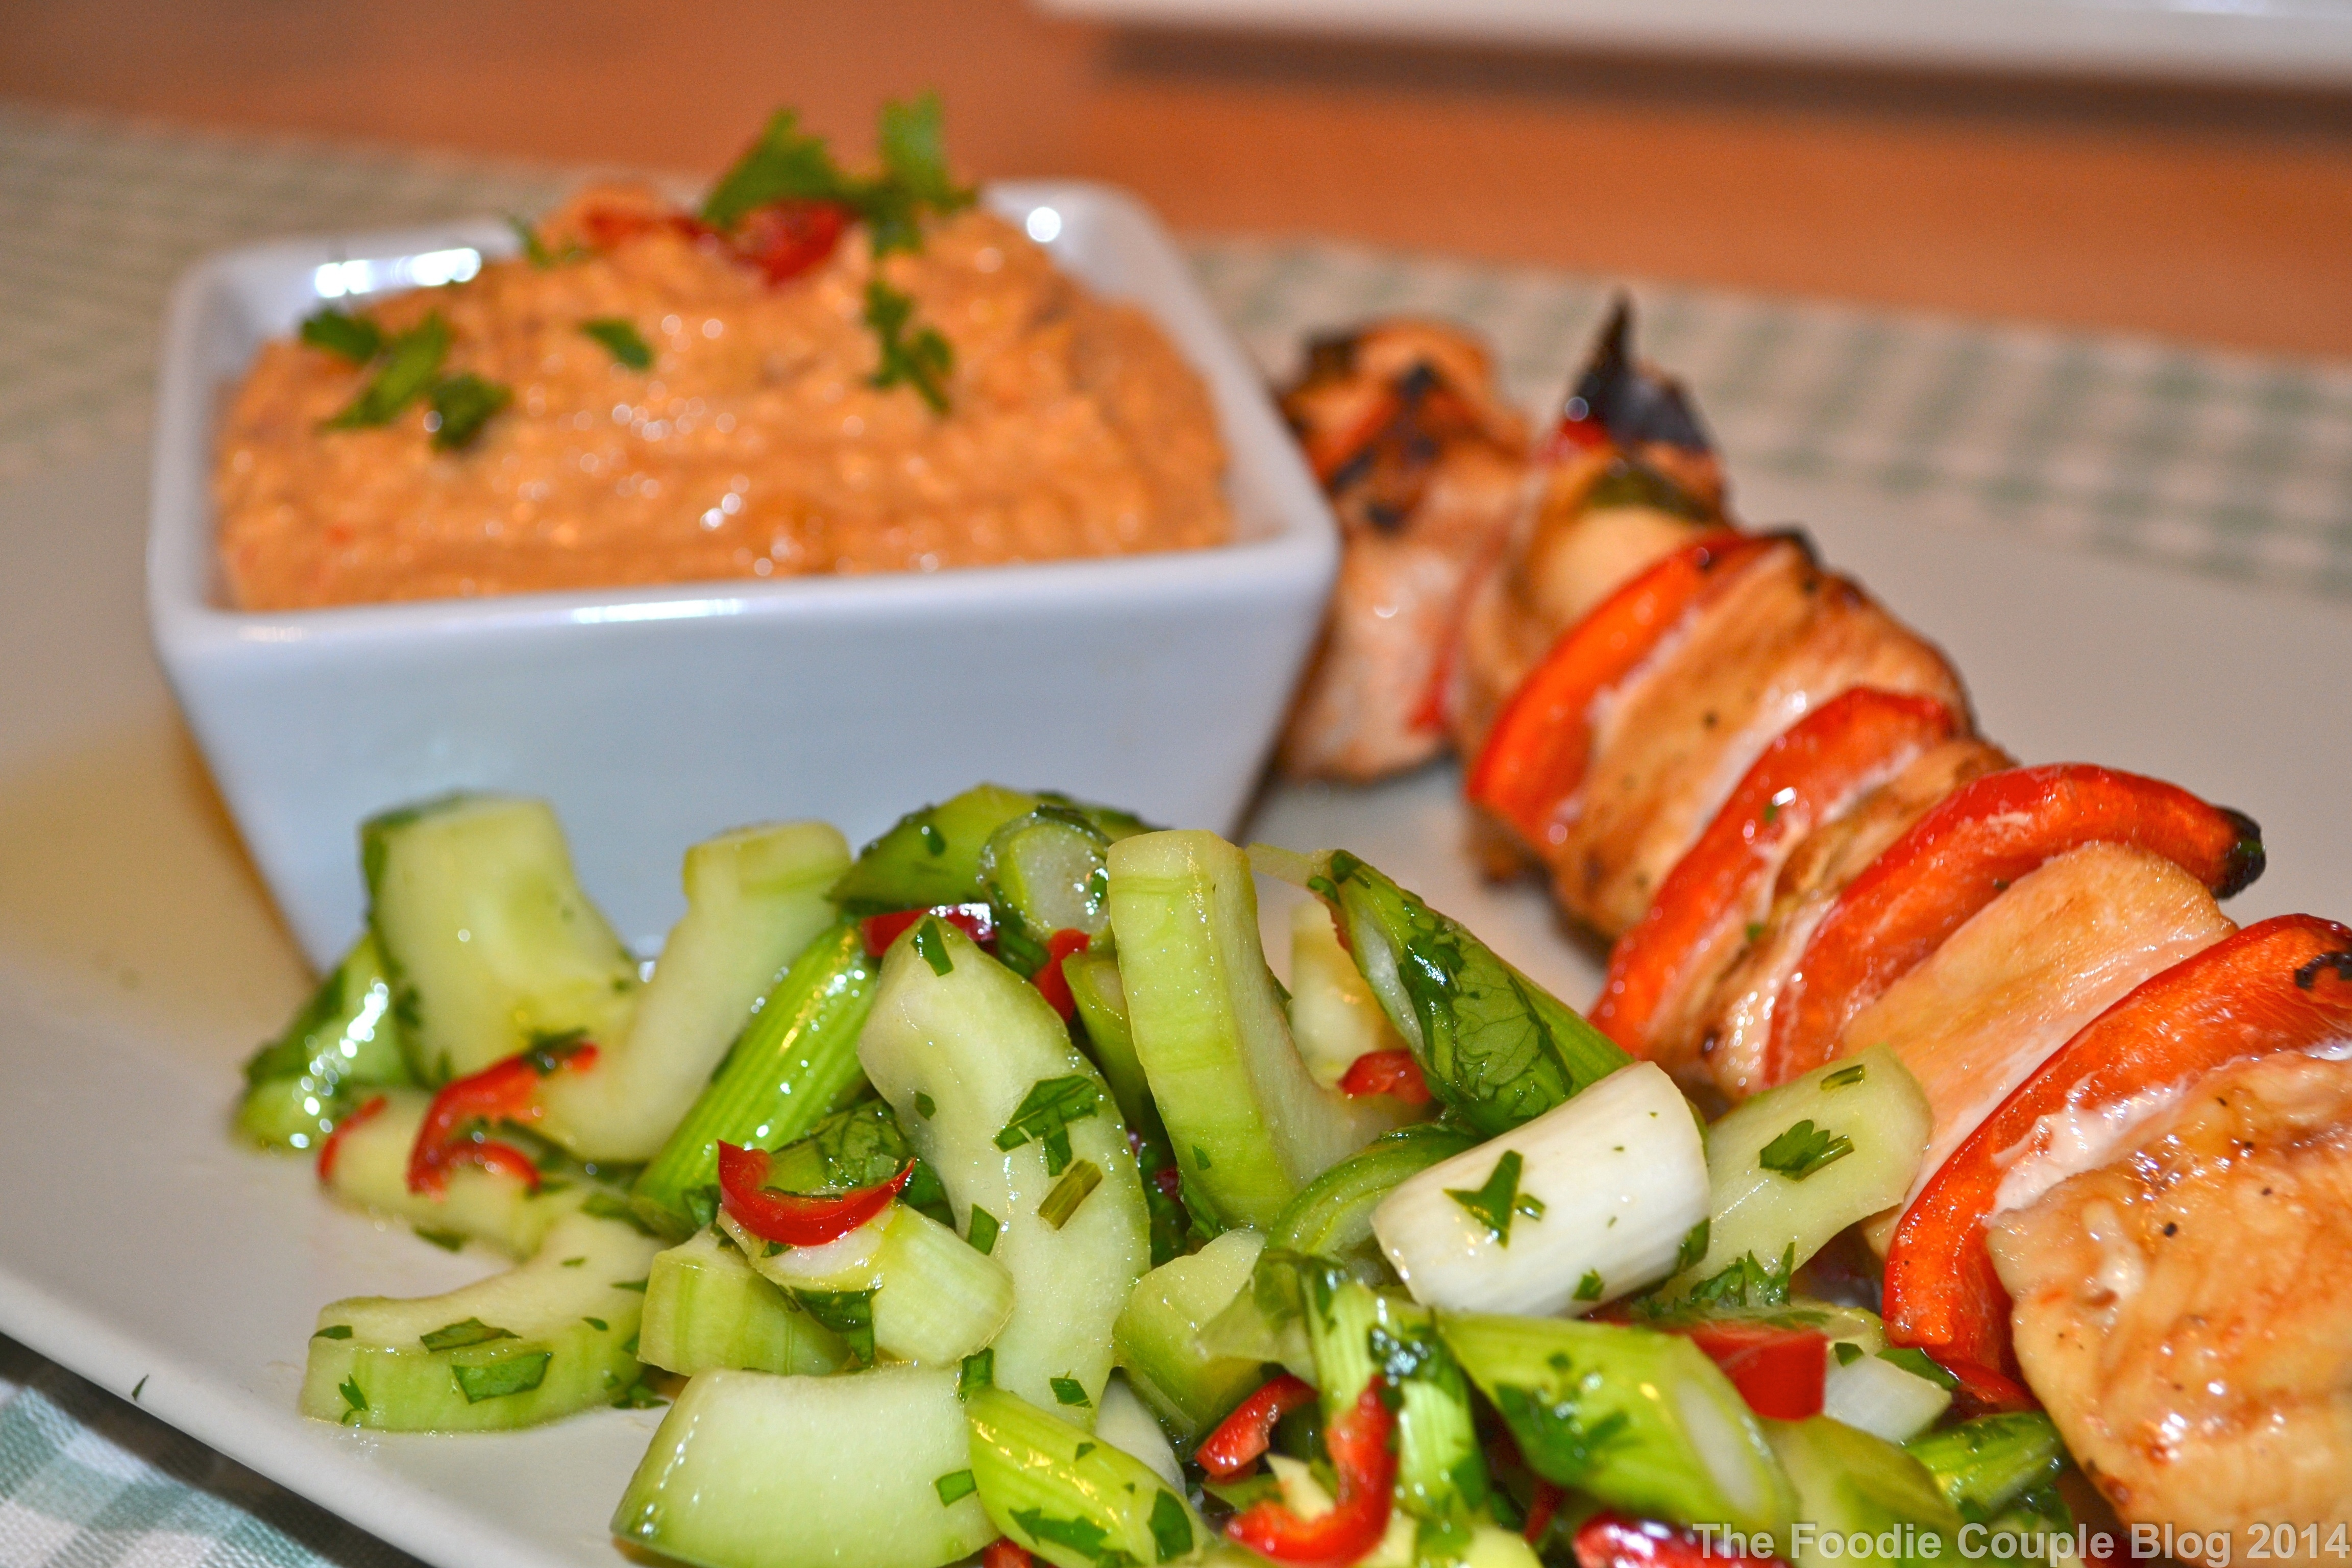 Chicken Satay Skewer with a Spicy Cucumber Salad